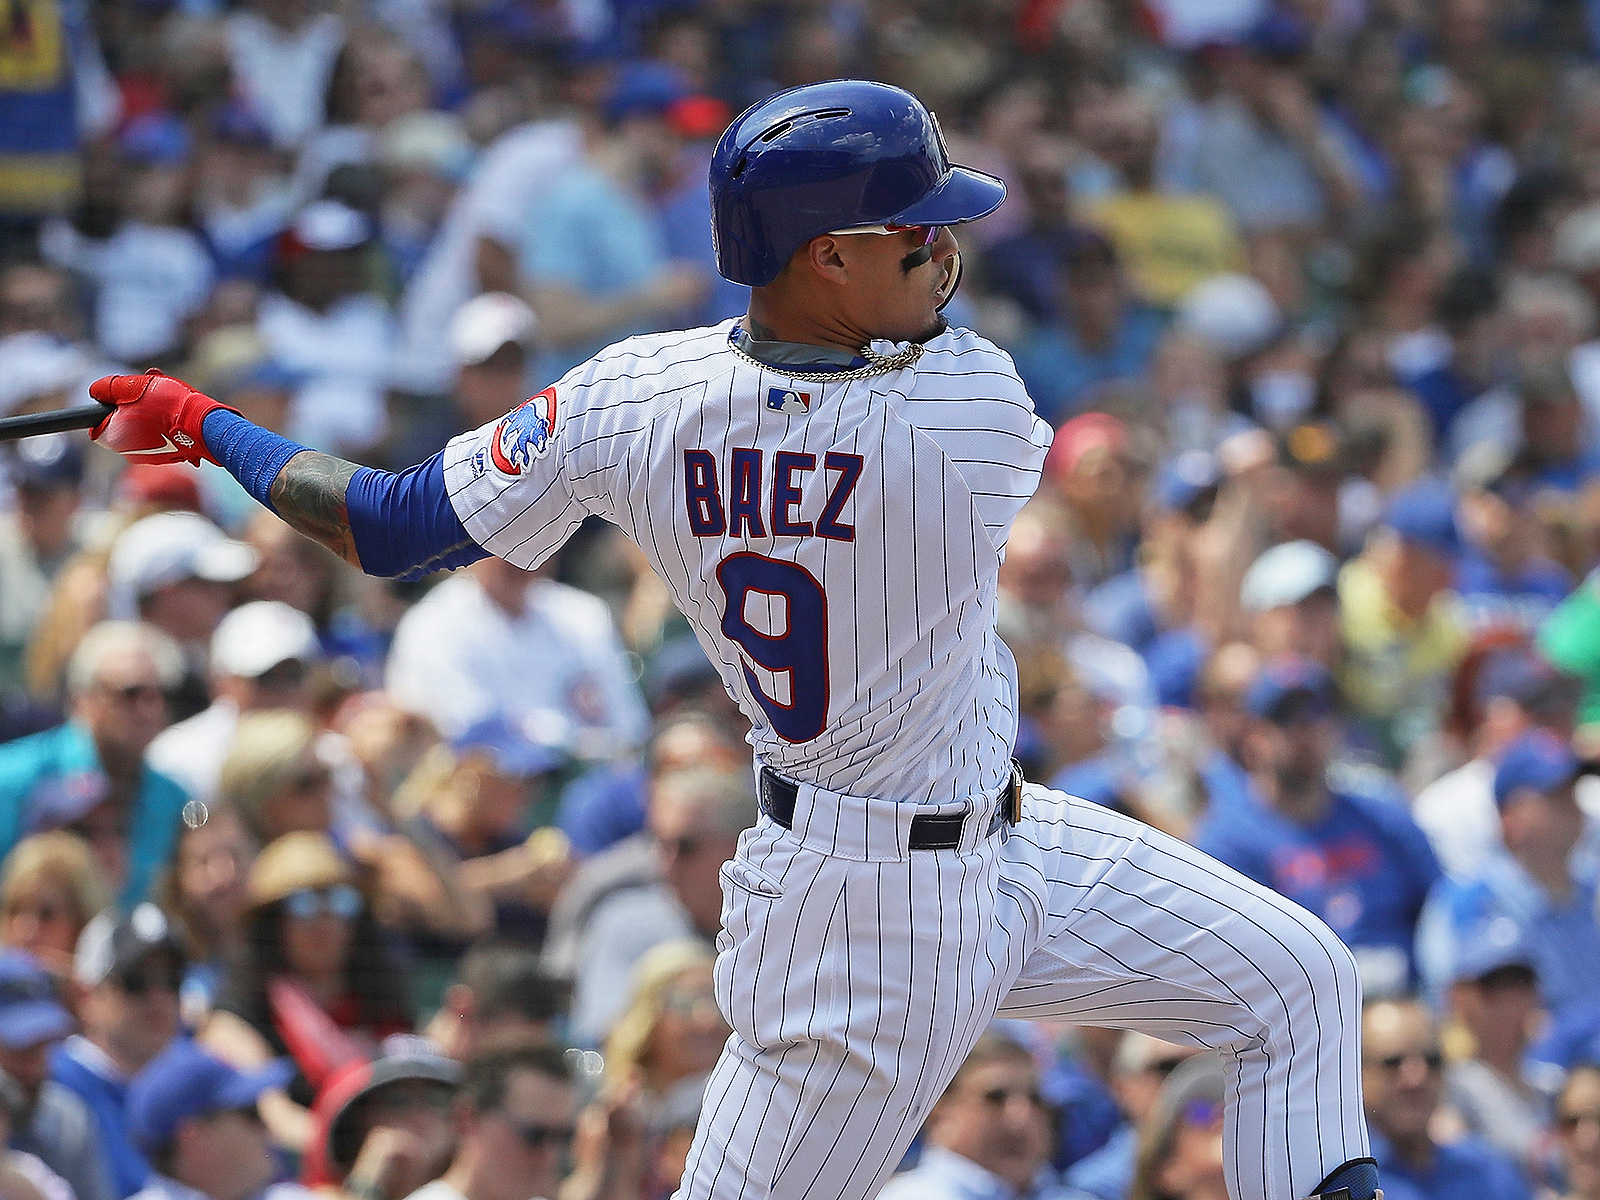 Chicago Cubs Javier Baez